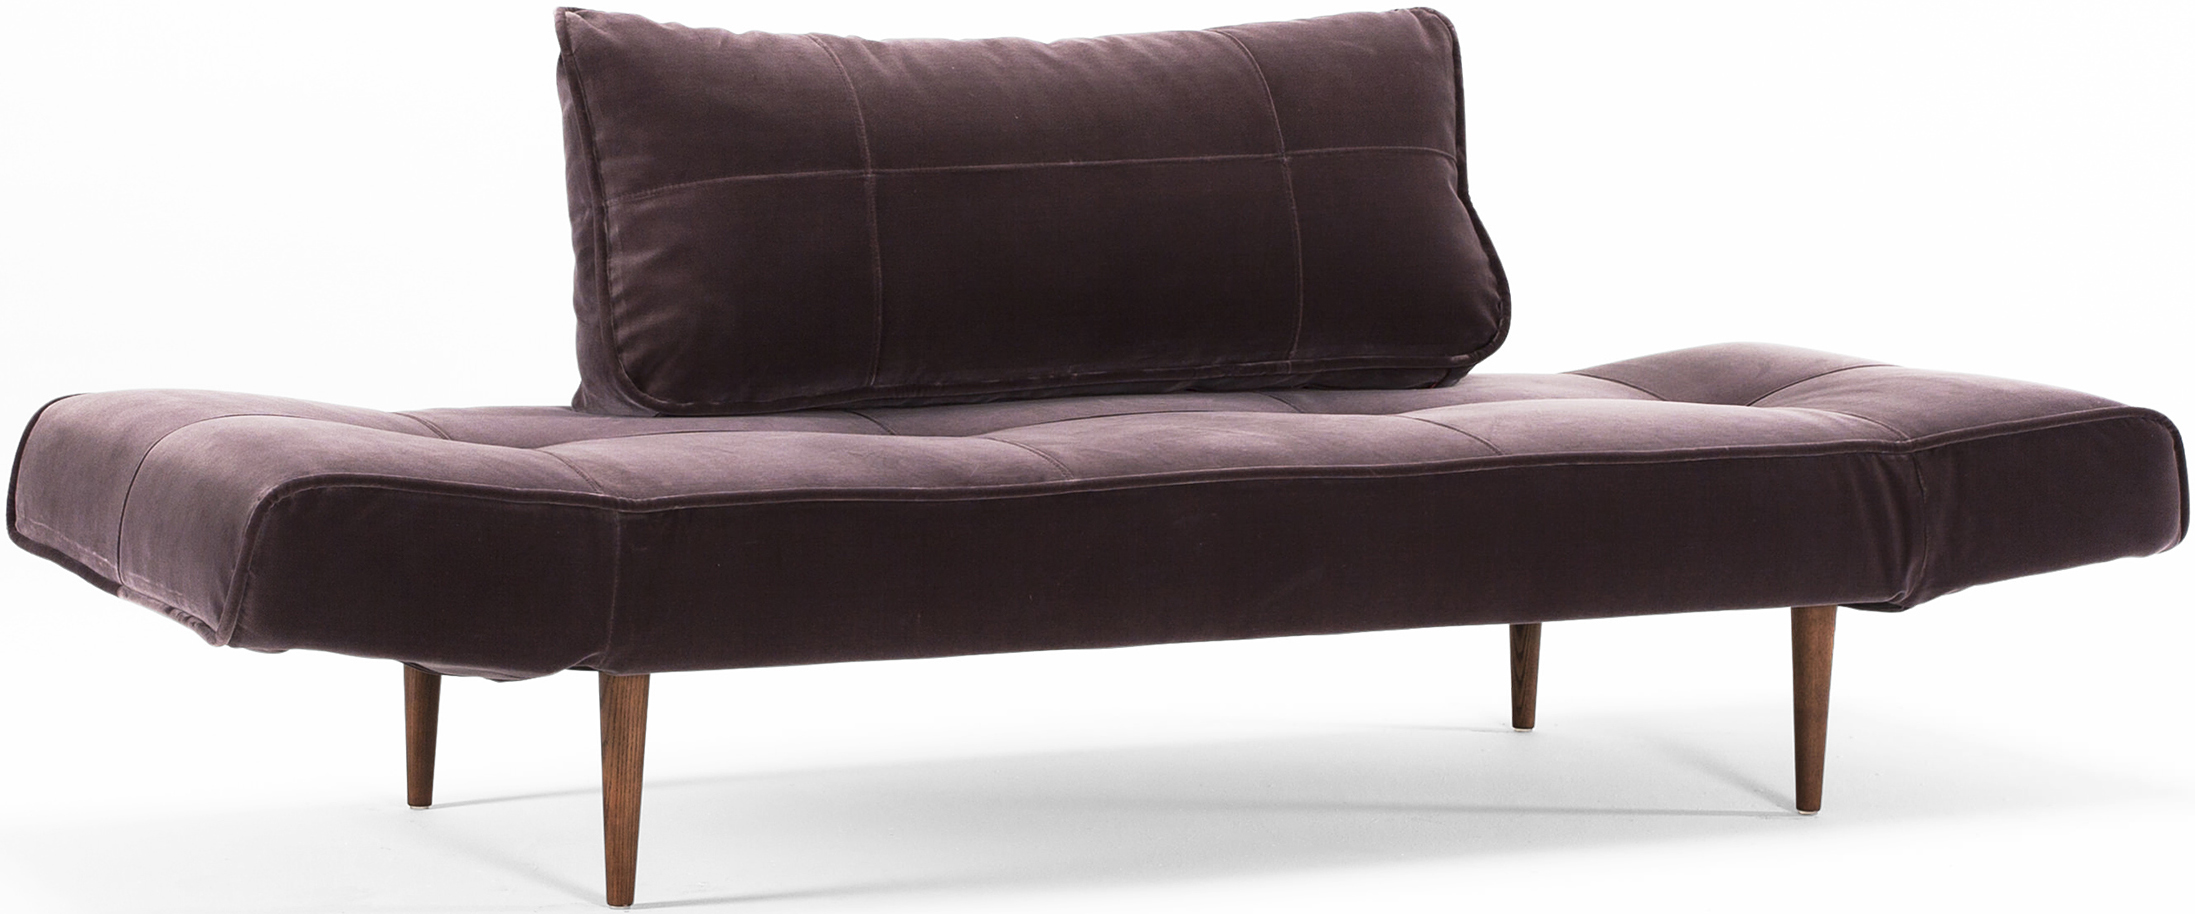 innovation zeal sofa dark styletto mauve